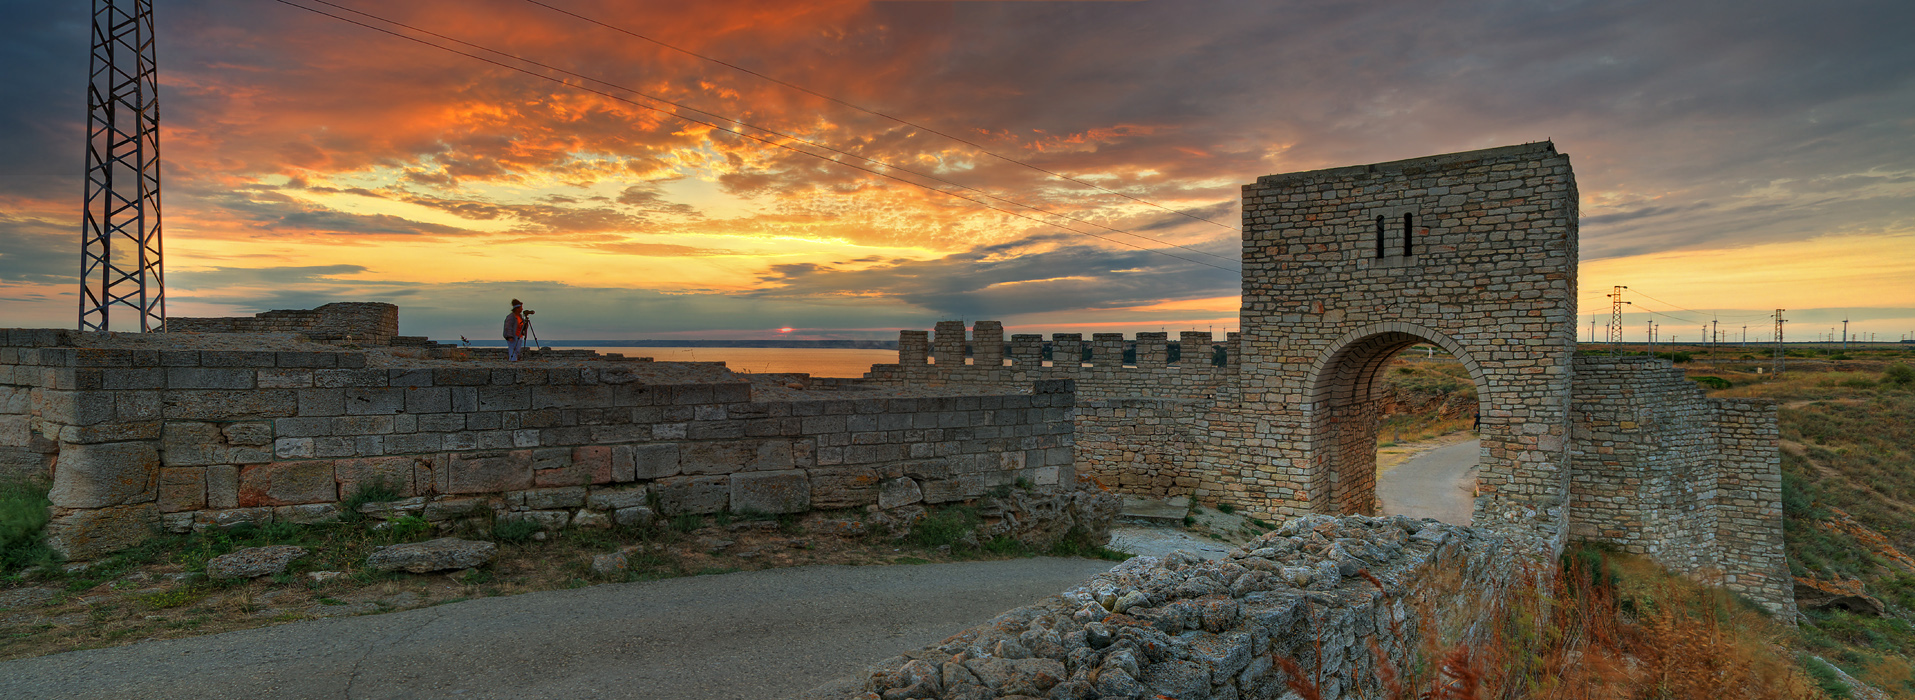 Fortress of Kaliakra